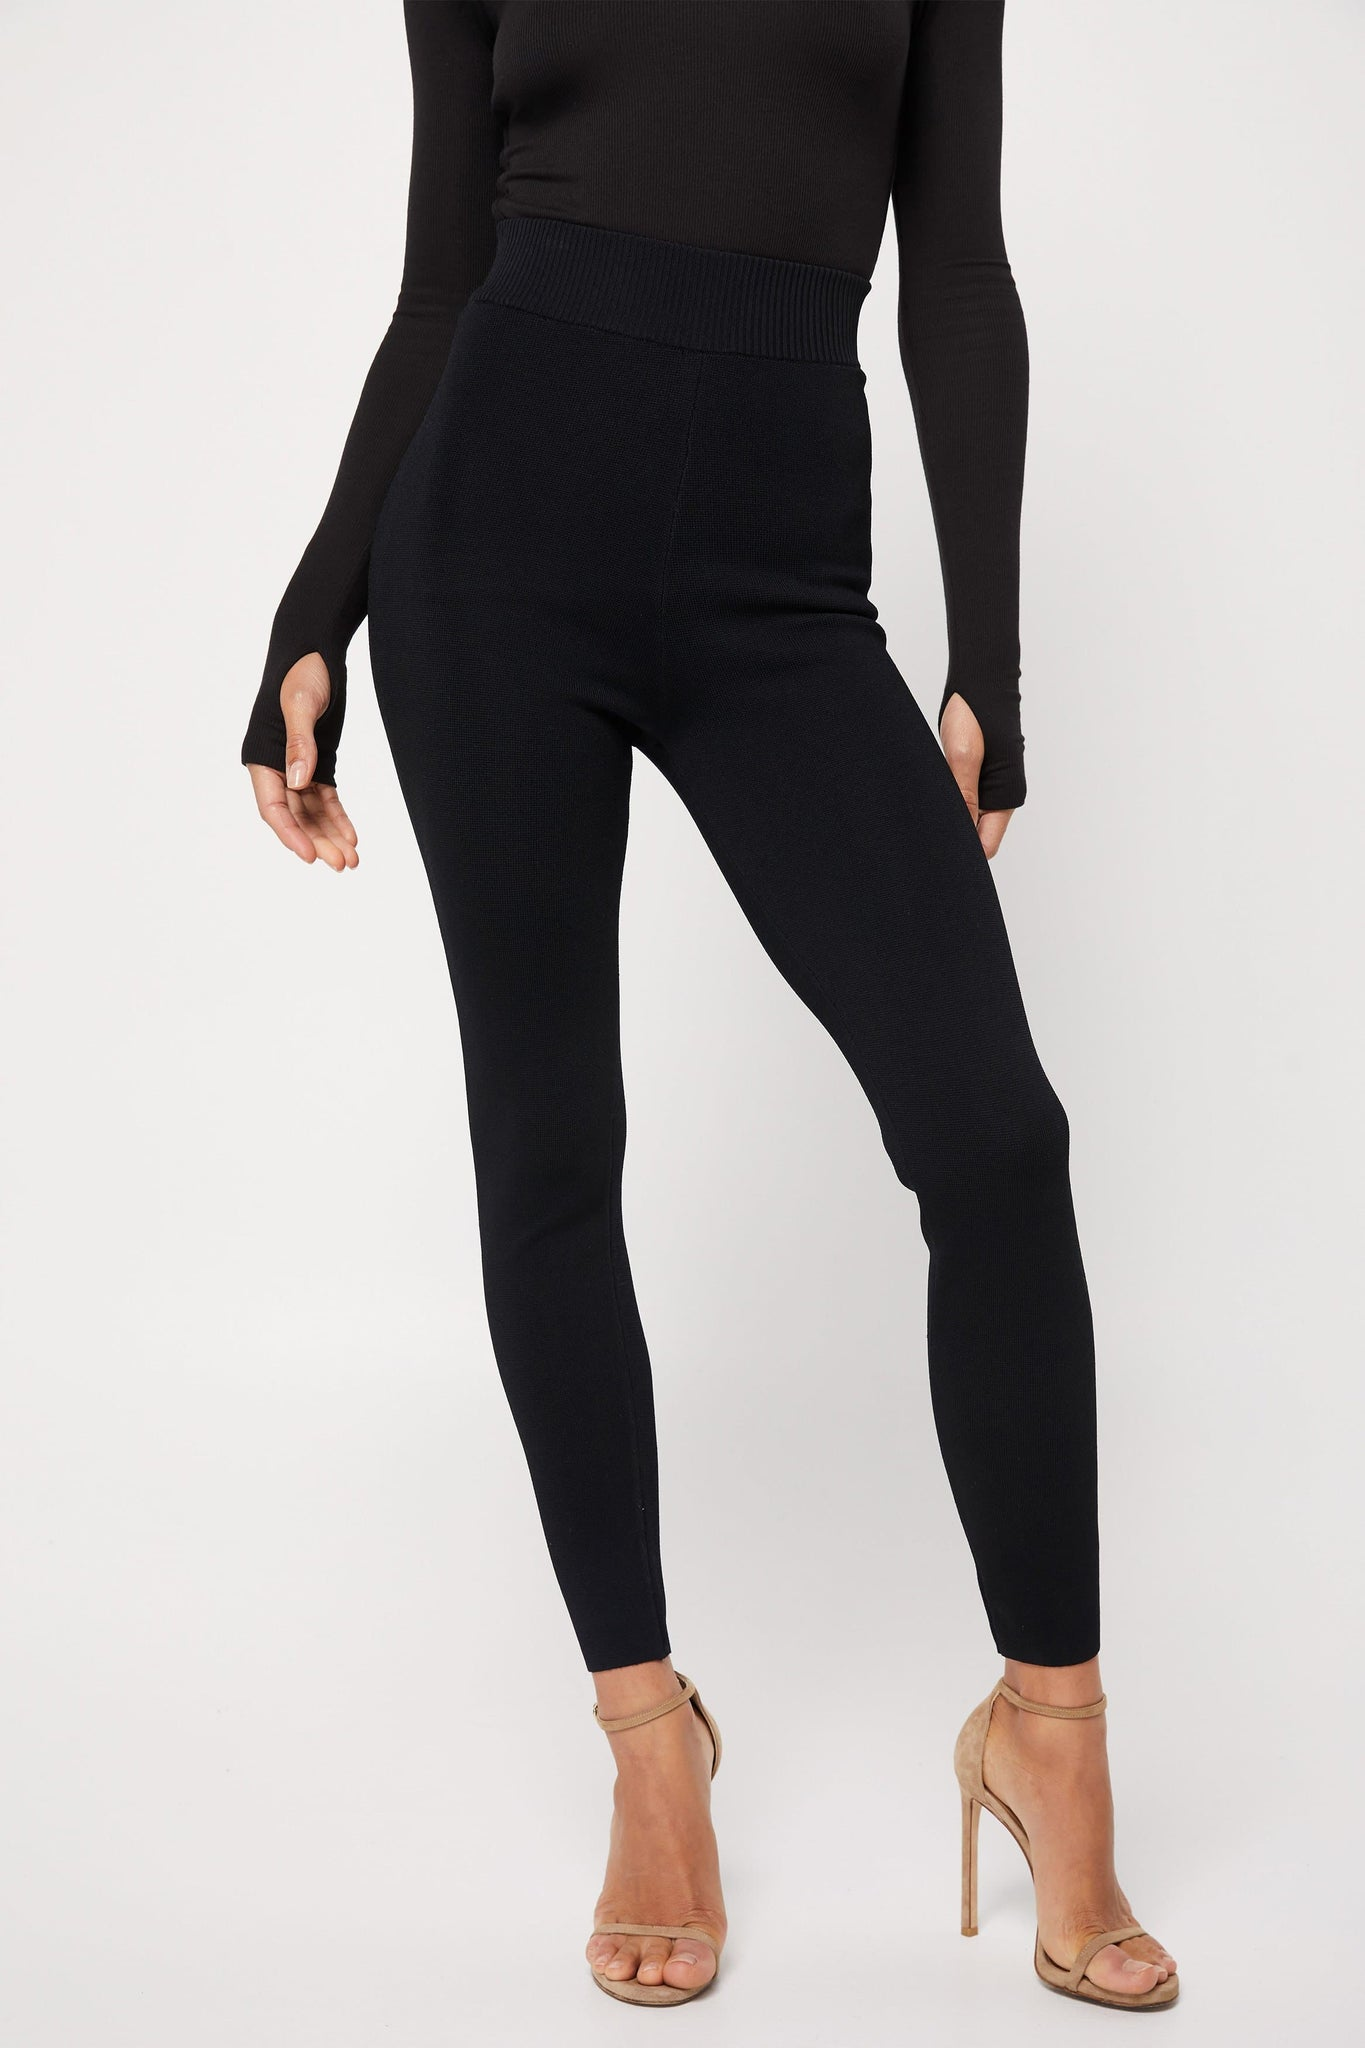 The Soho Knitted Legging